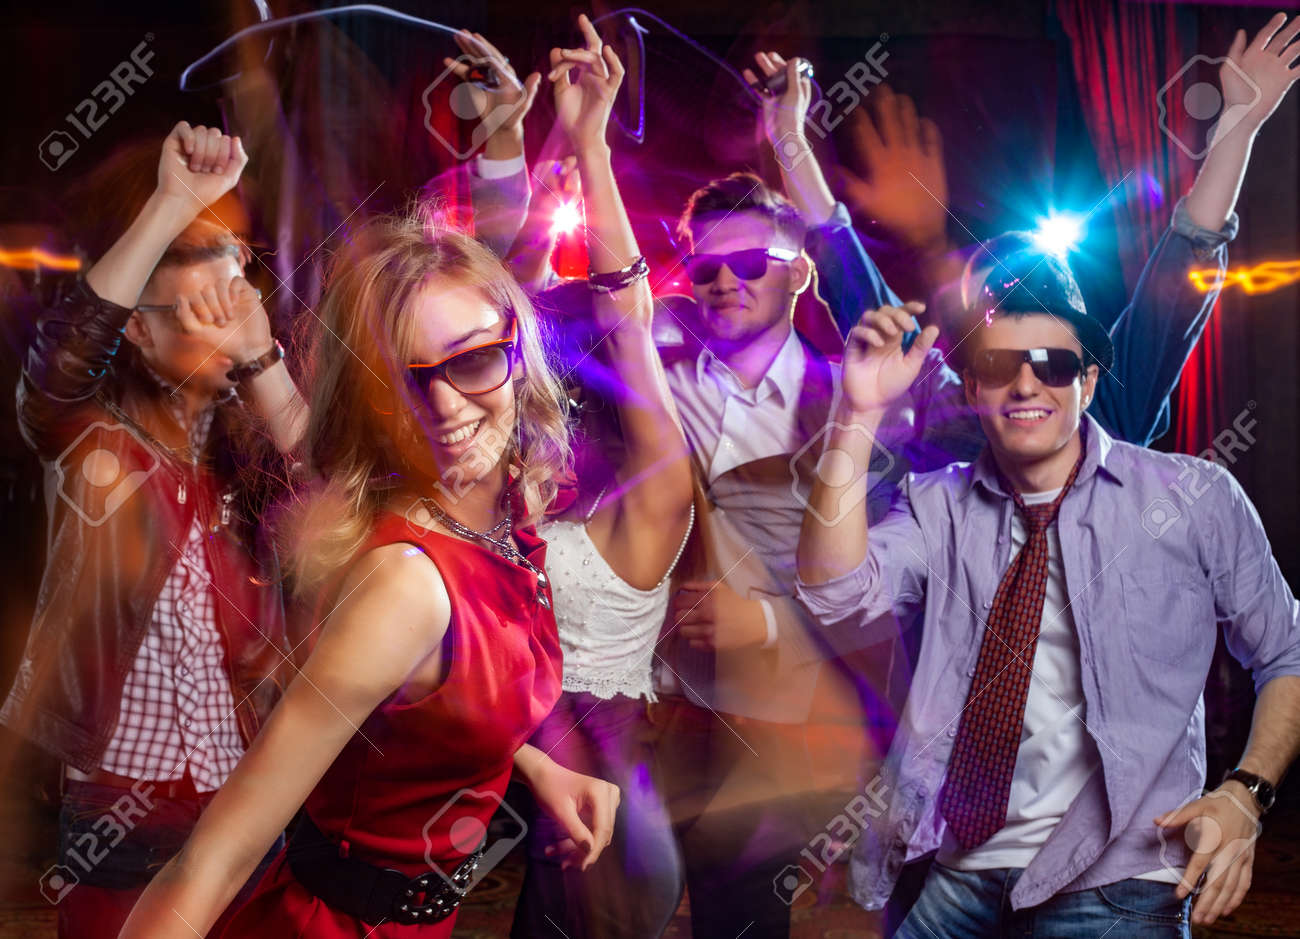 Group of young people dancing at the disco club - 168042595